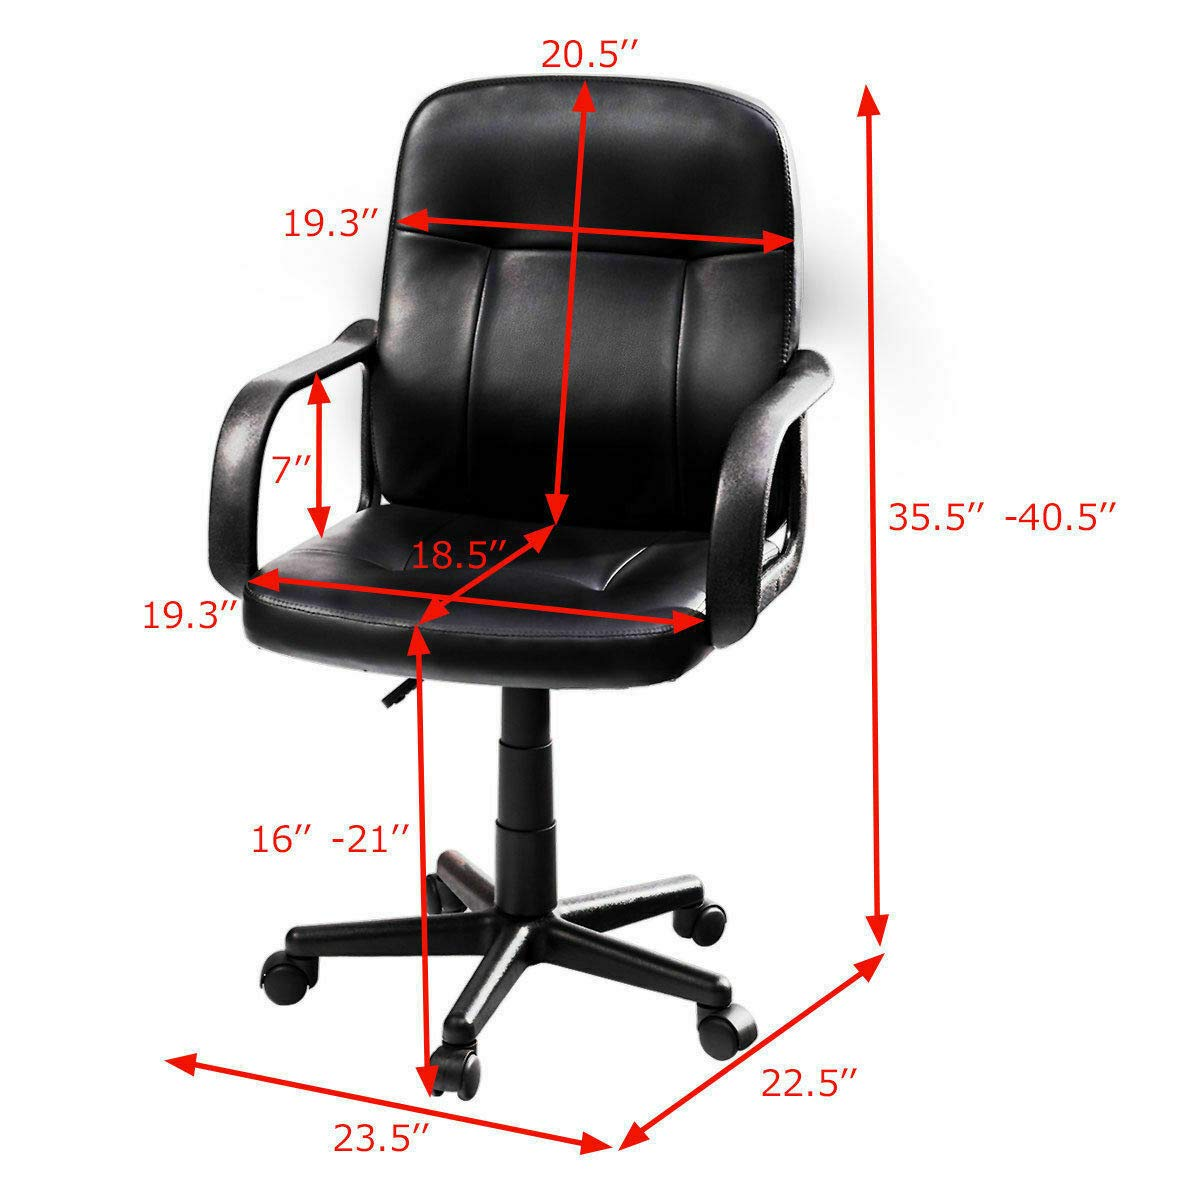 Seleq Compact Black PU Leather Desk Chair for Home Office by Seleq (Image #2)